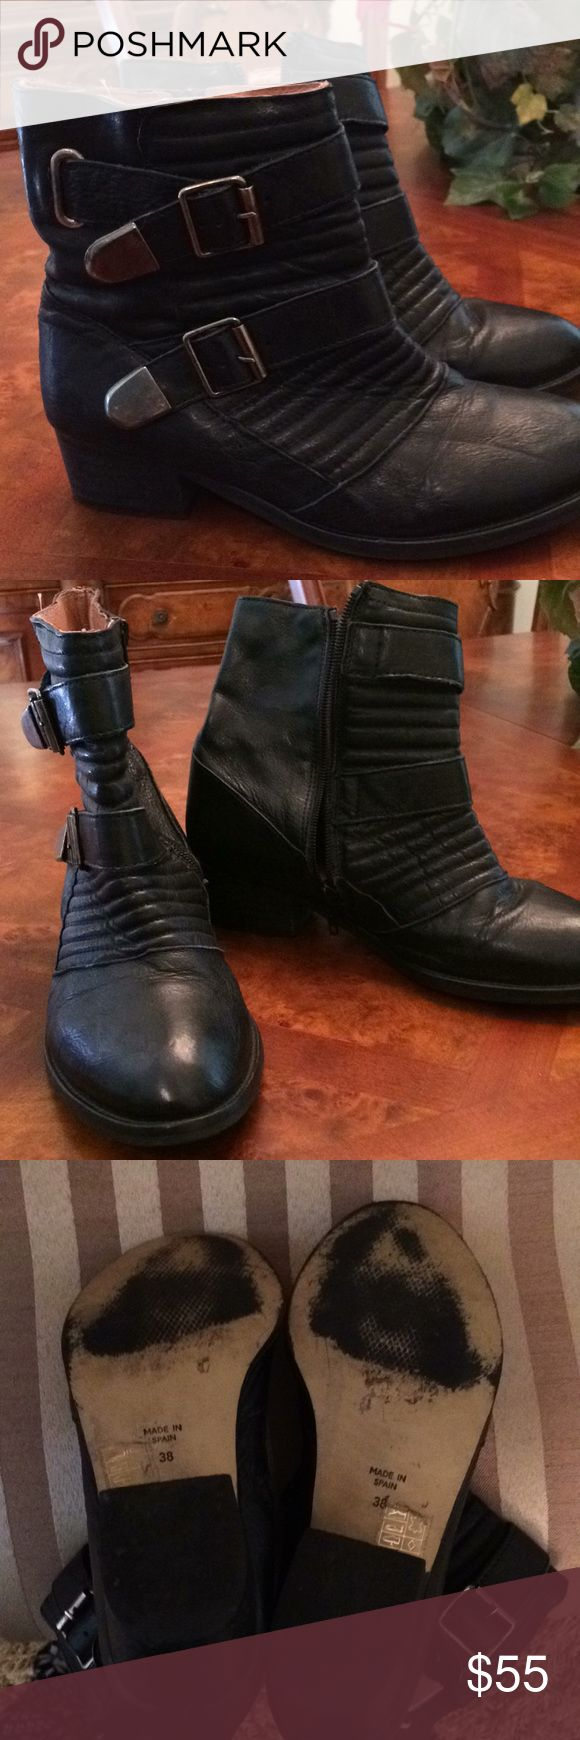 Ladies All Leather TOPSHOP Black Ankle Boots. EUC And I Double Ankle Boots.Really nice soft sheep leather, inside and out. Fantastic! Size 8. Topshop Shoes Ankle Boots & Booties